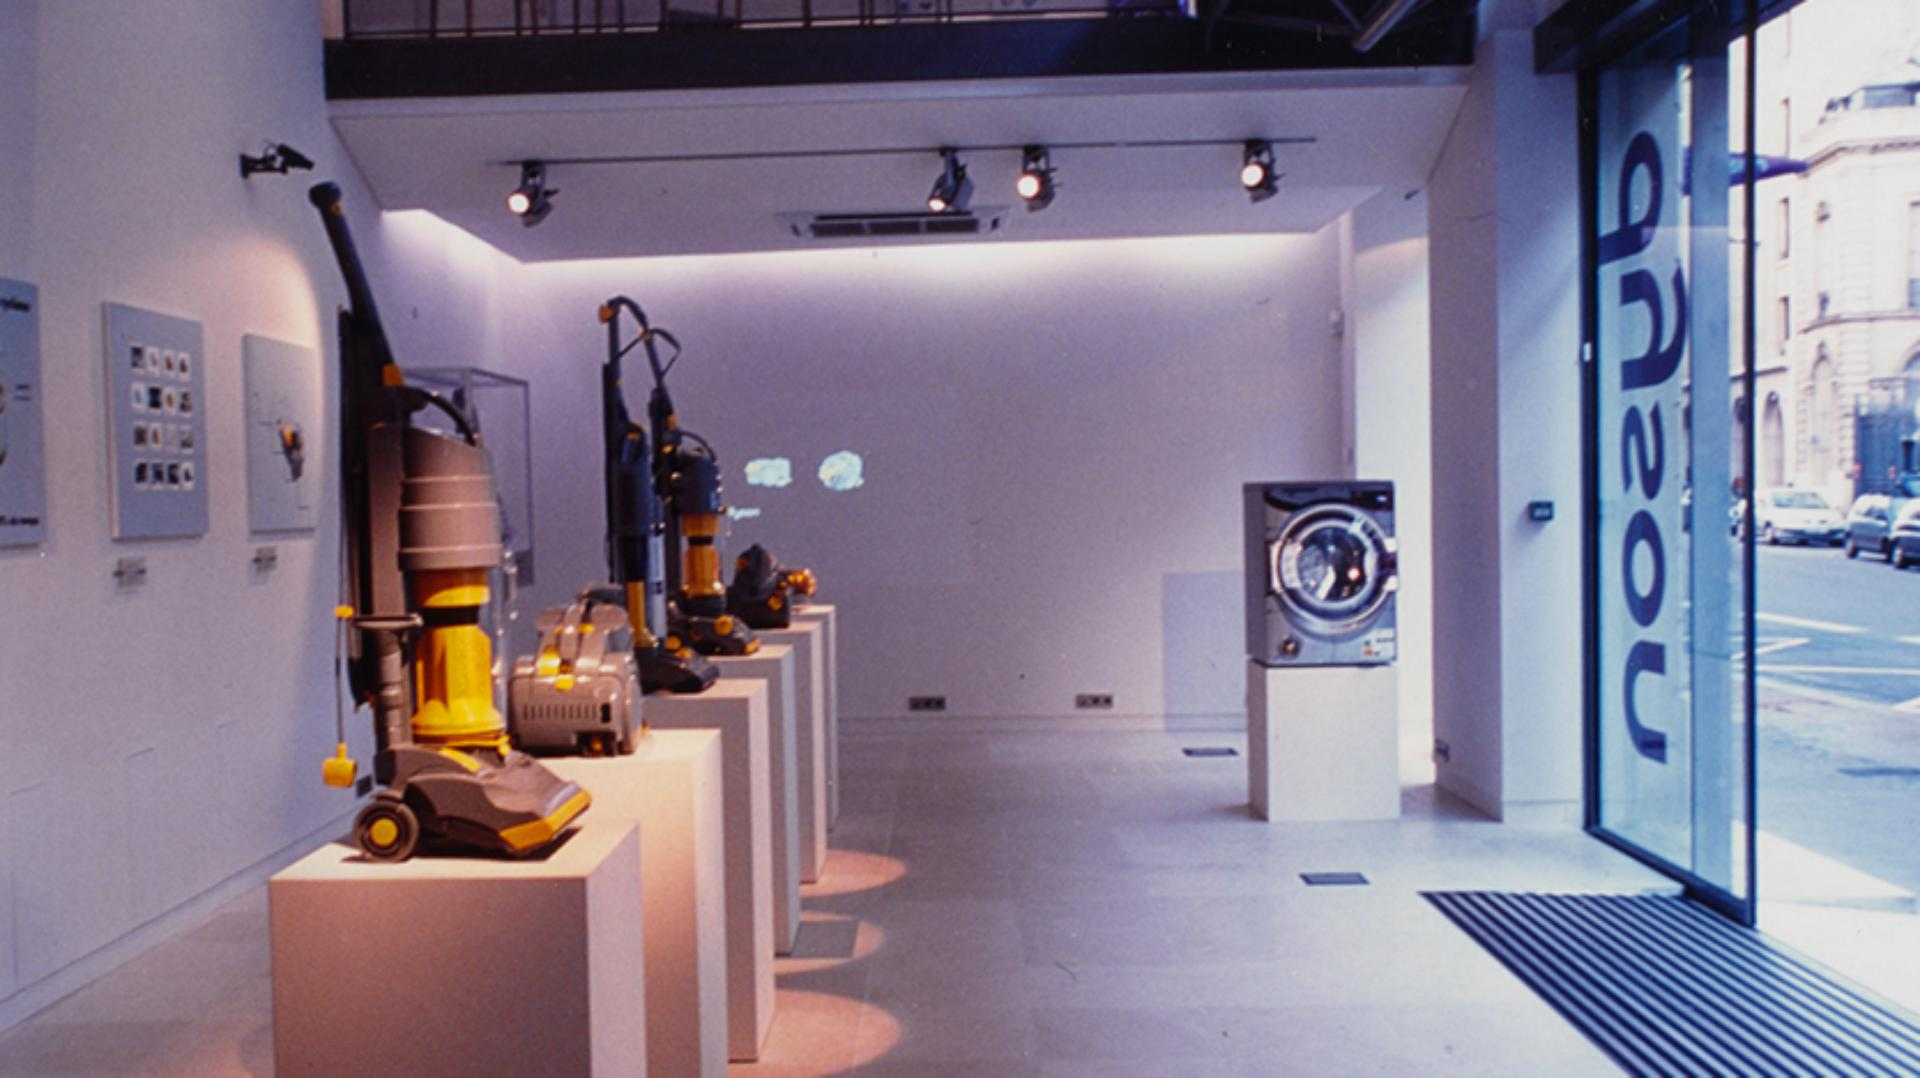 Inside the first Dyson store in Paris